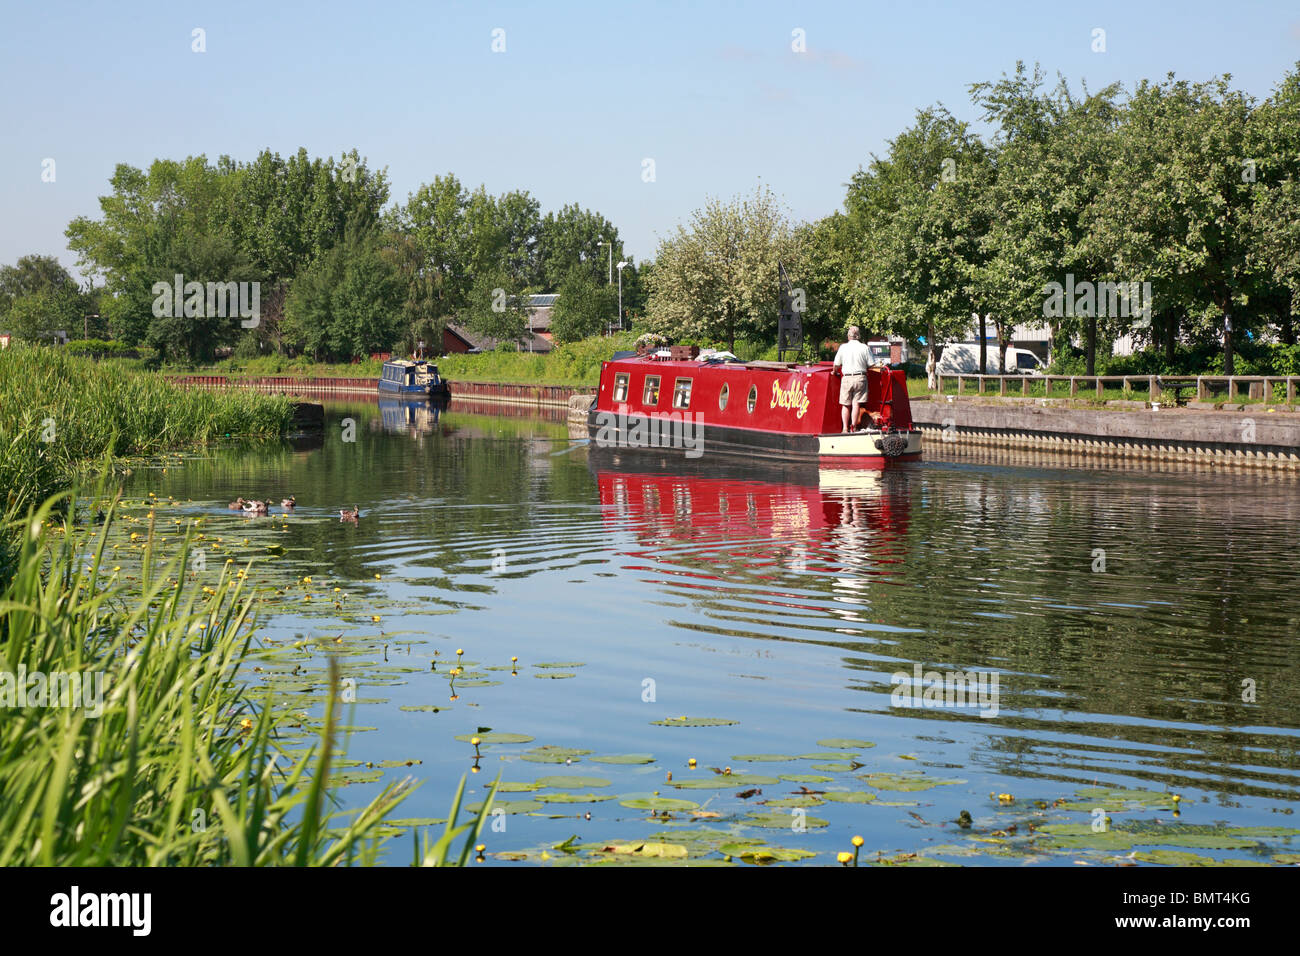 Narrow boats on the Selby Canal, Selby, North Yorkshire, England, UK. - Stock Image